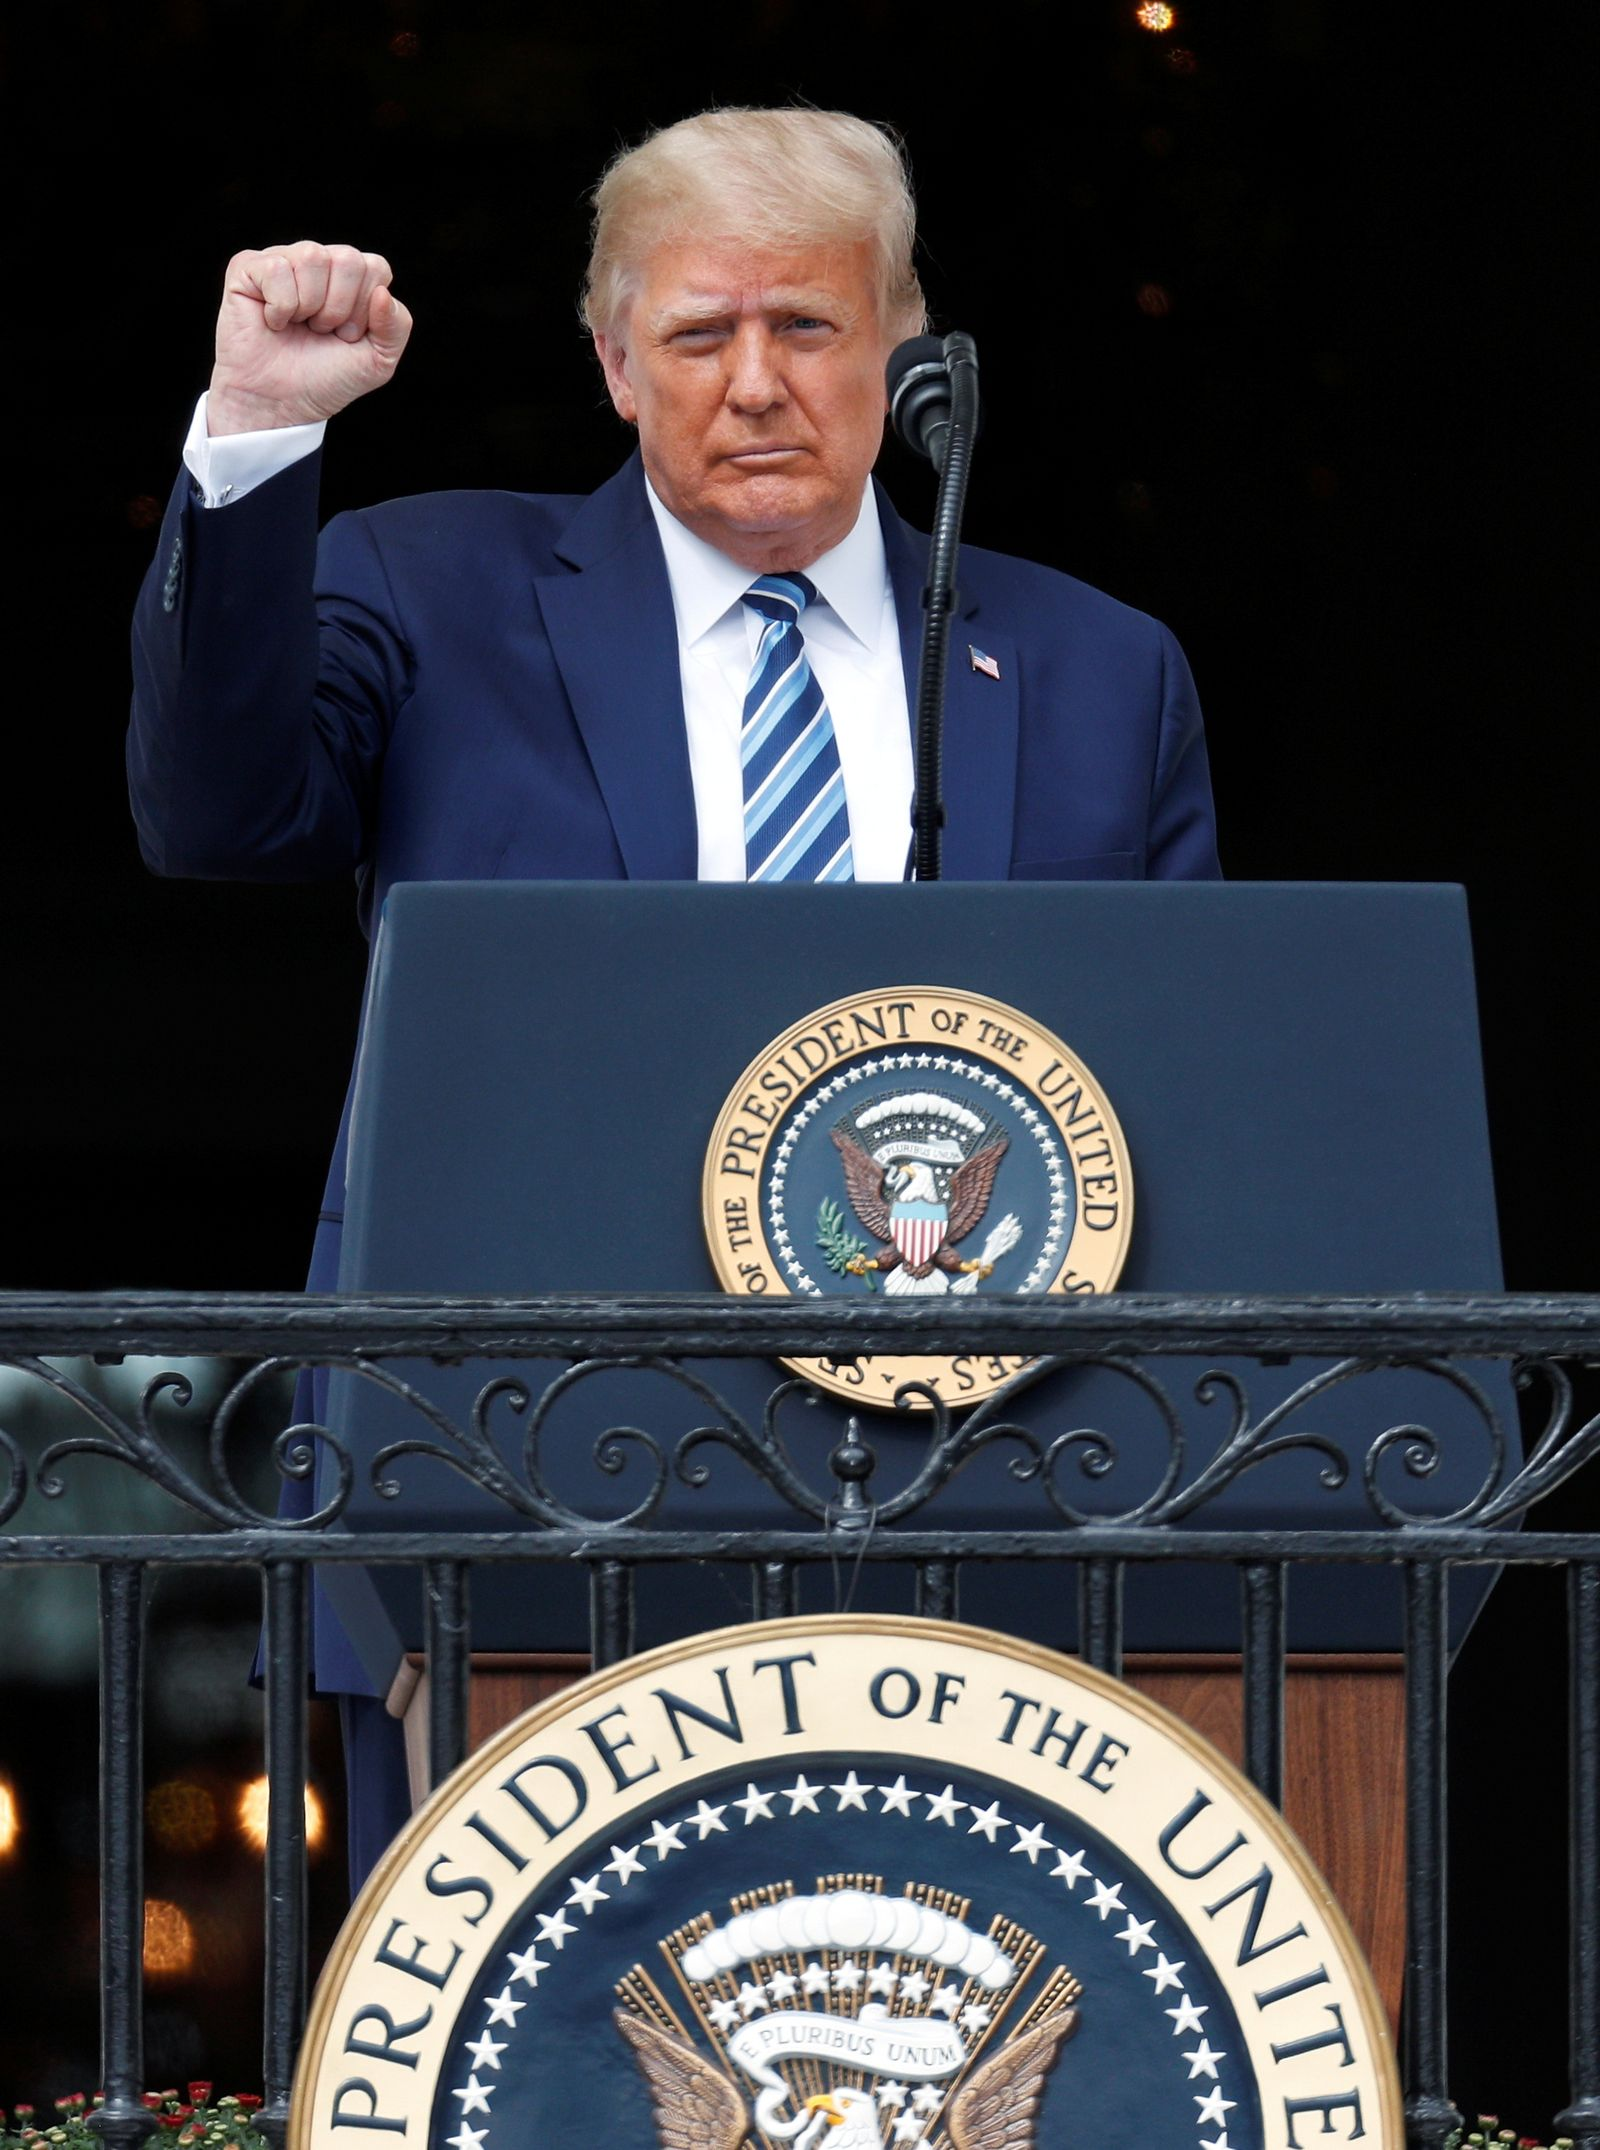 FILE PHOTO: U.S. President Donald Trump holds a campaign rally on the South Lawn of the White House in Washington